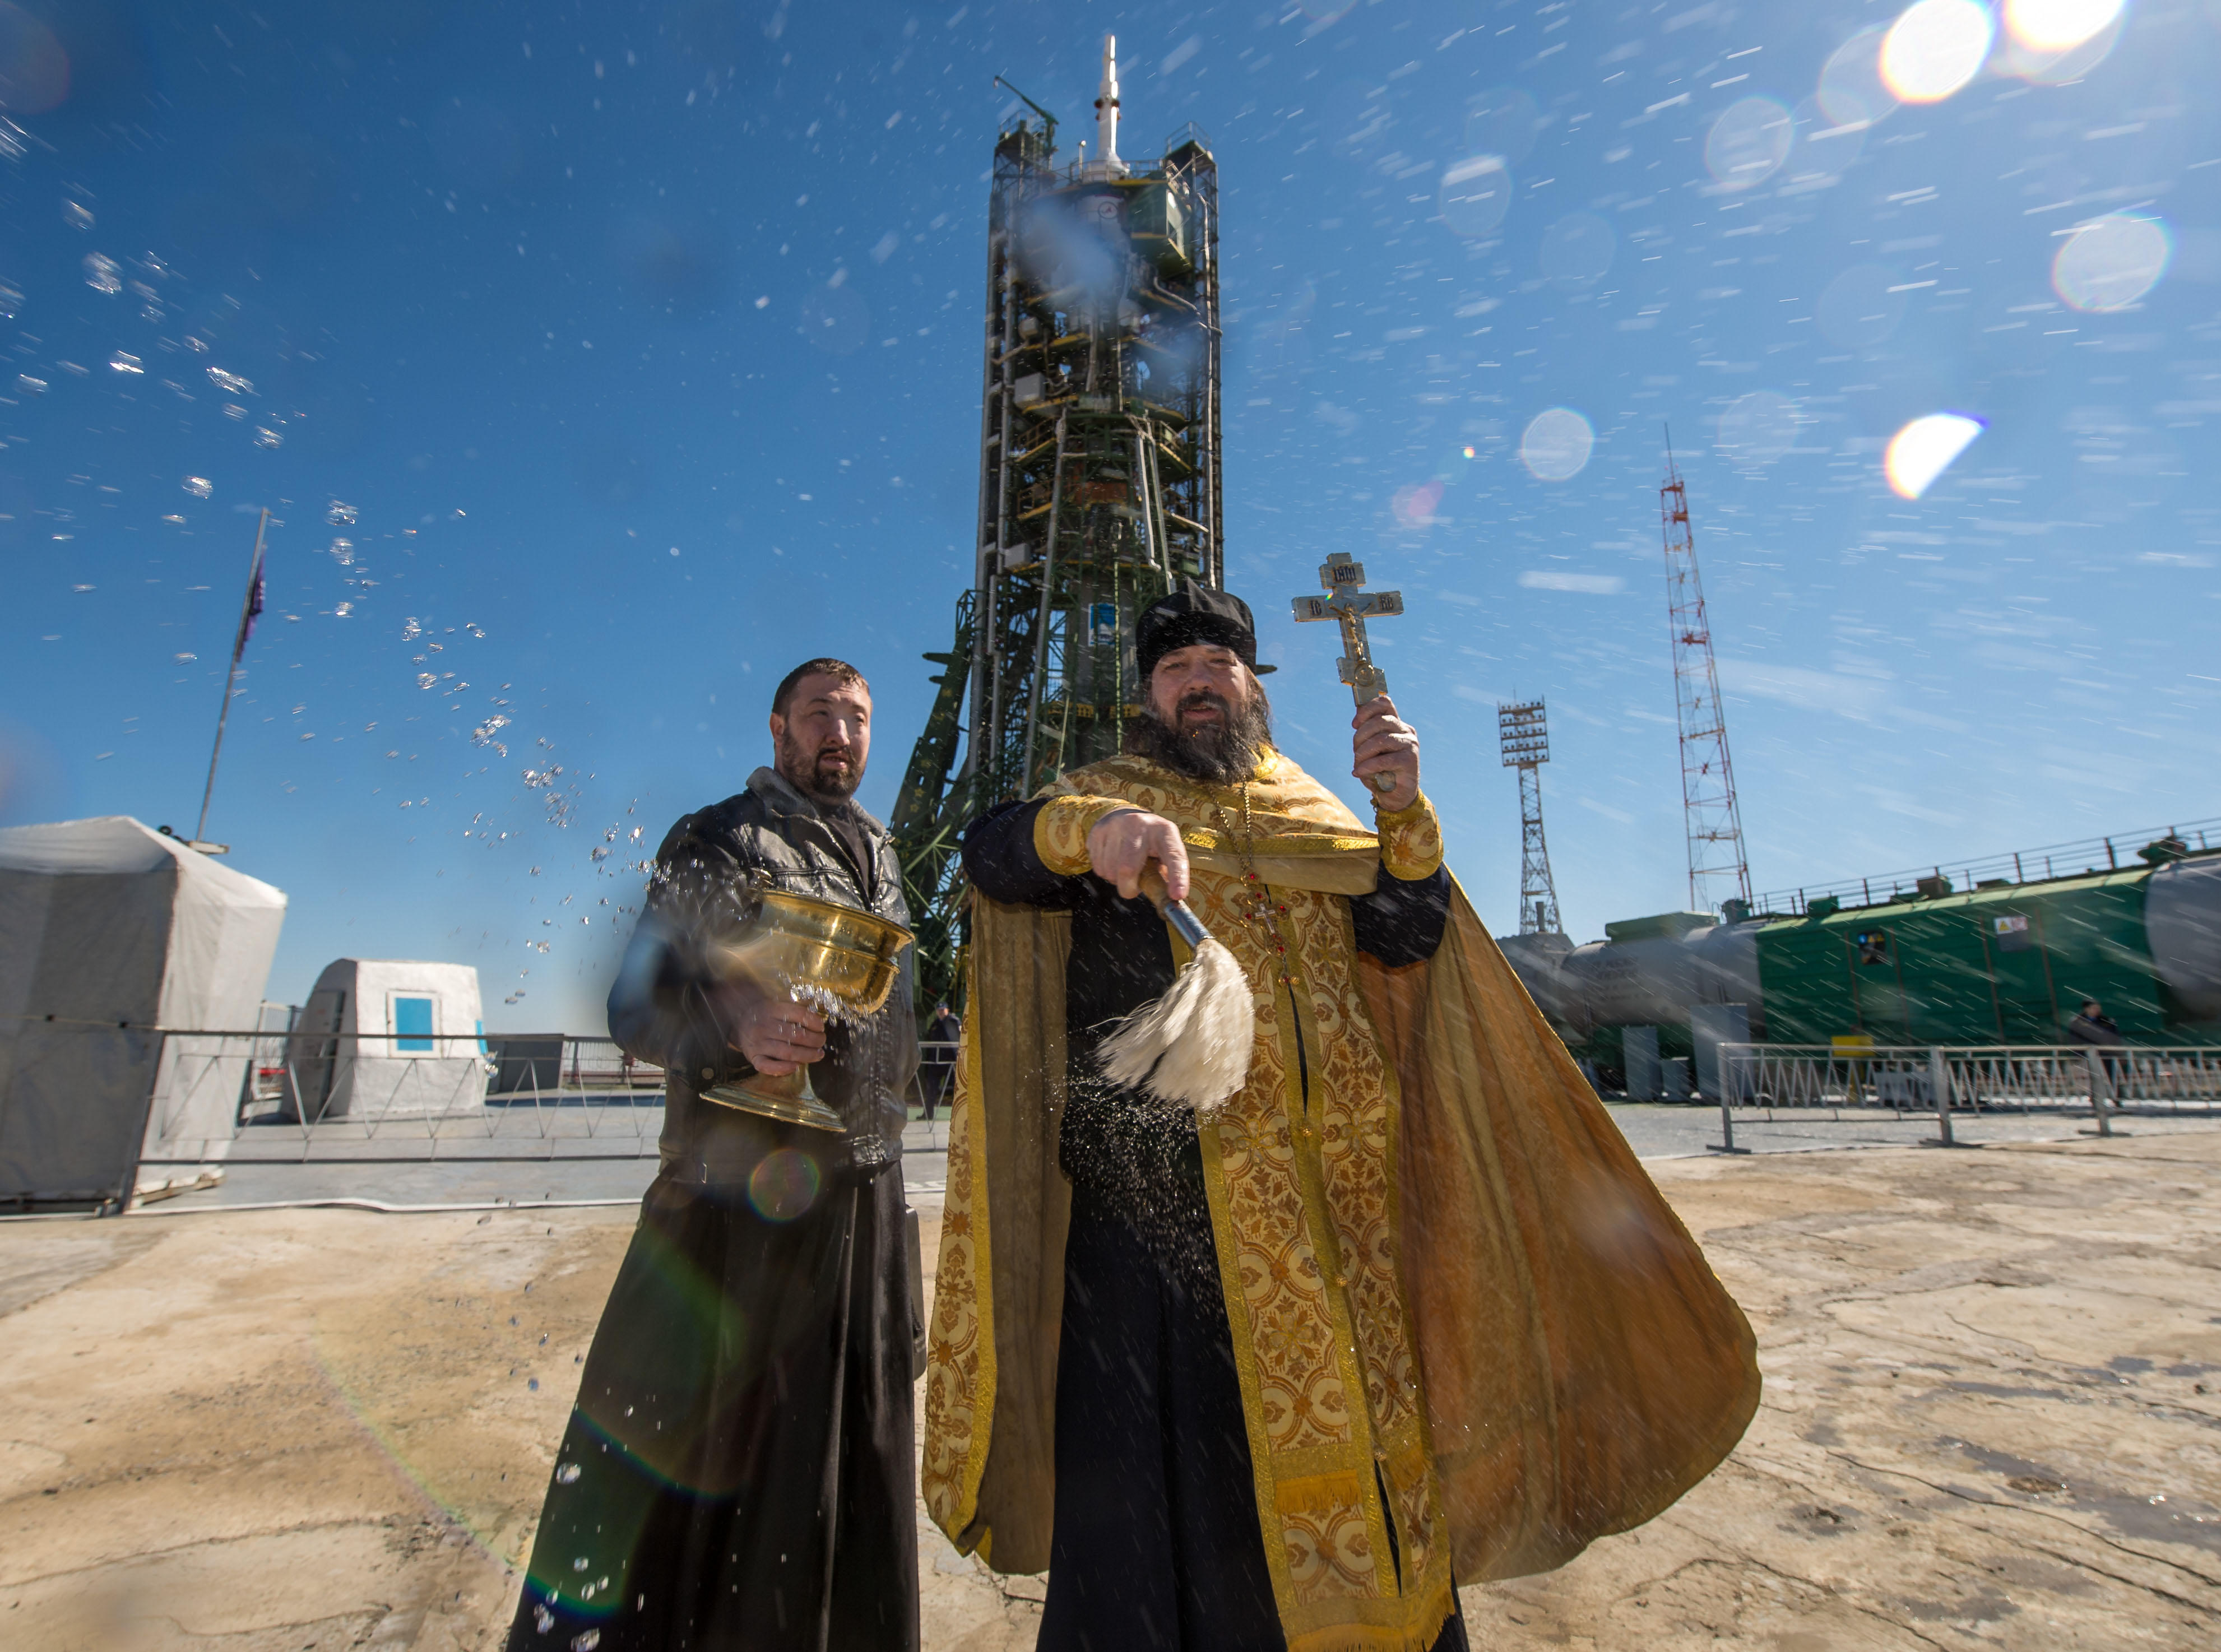 An Orthodox priest blesses members of the media after he blessed the Soyuz rocket at the Baikonur Cosmodrome launch pad in Kazakhstan in 2015.